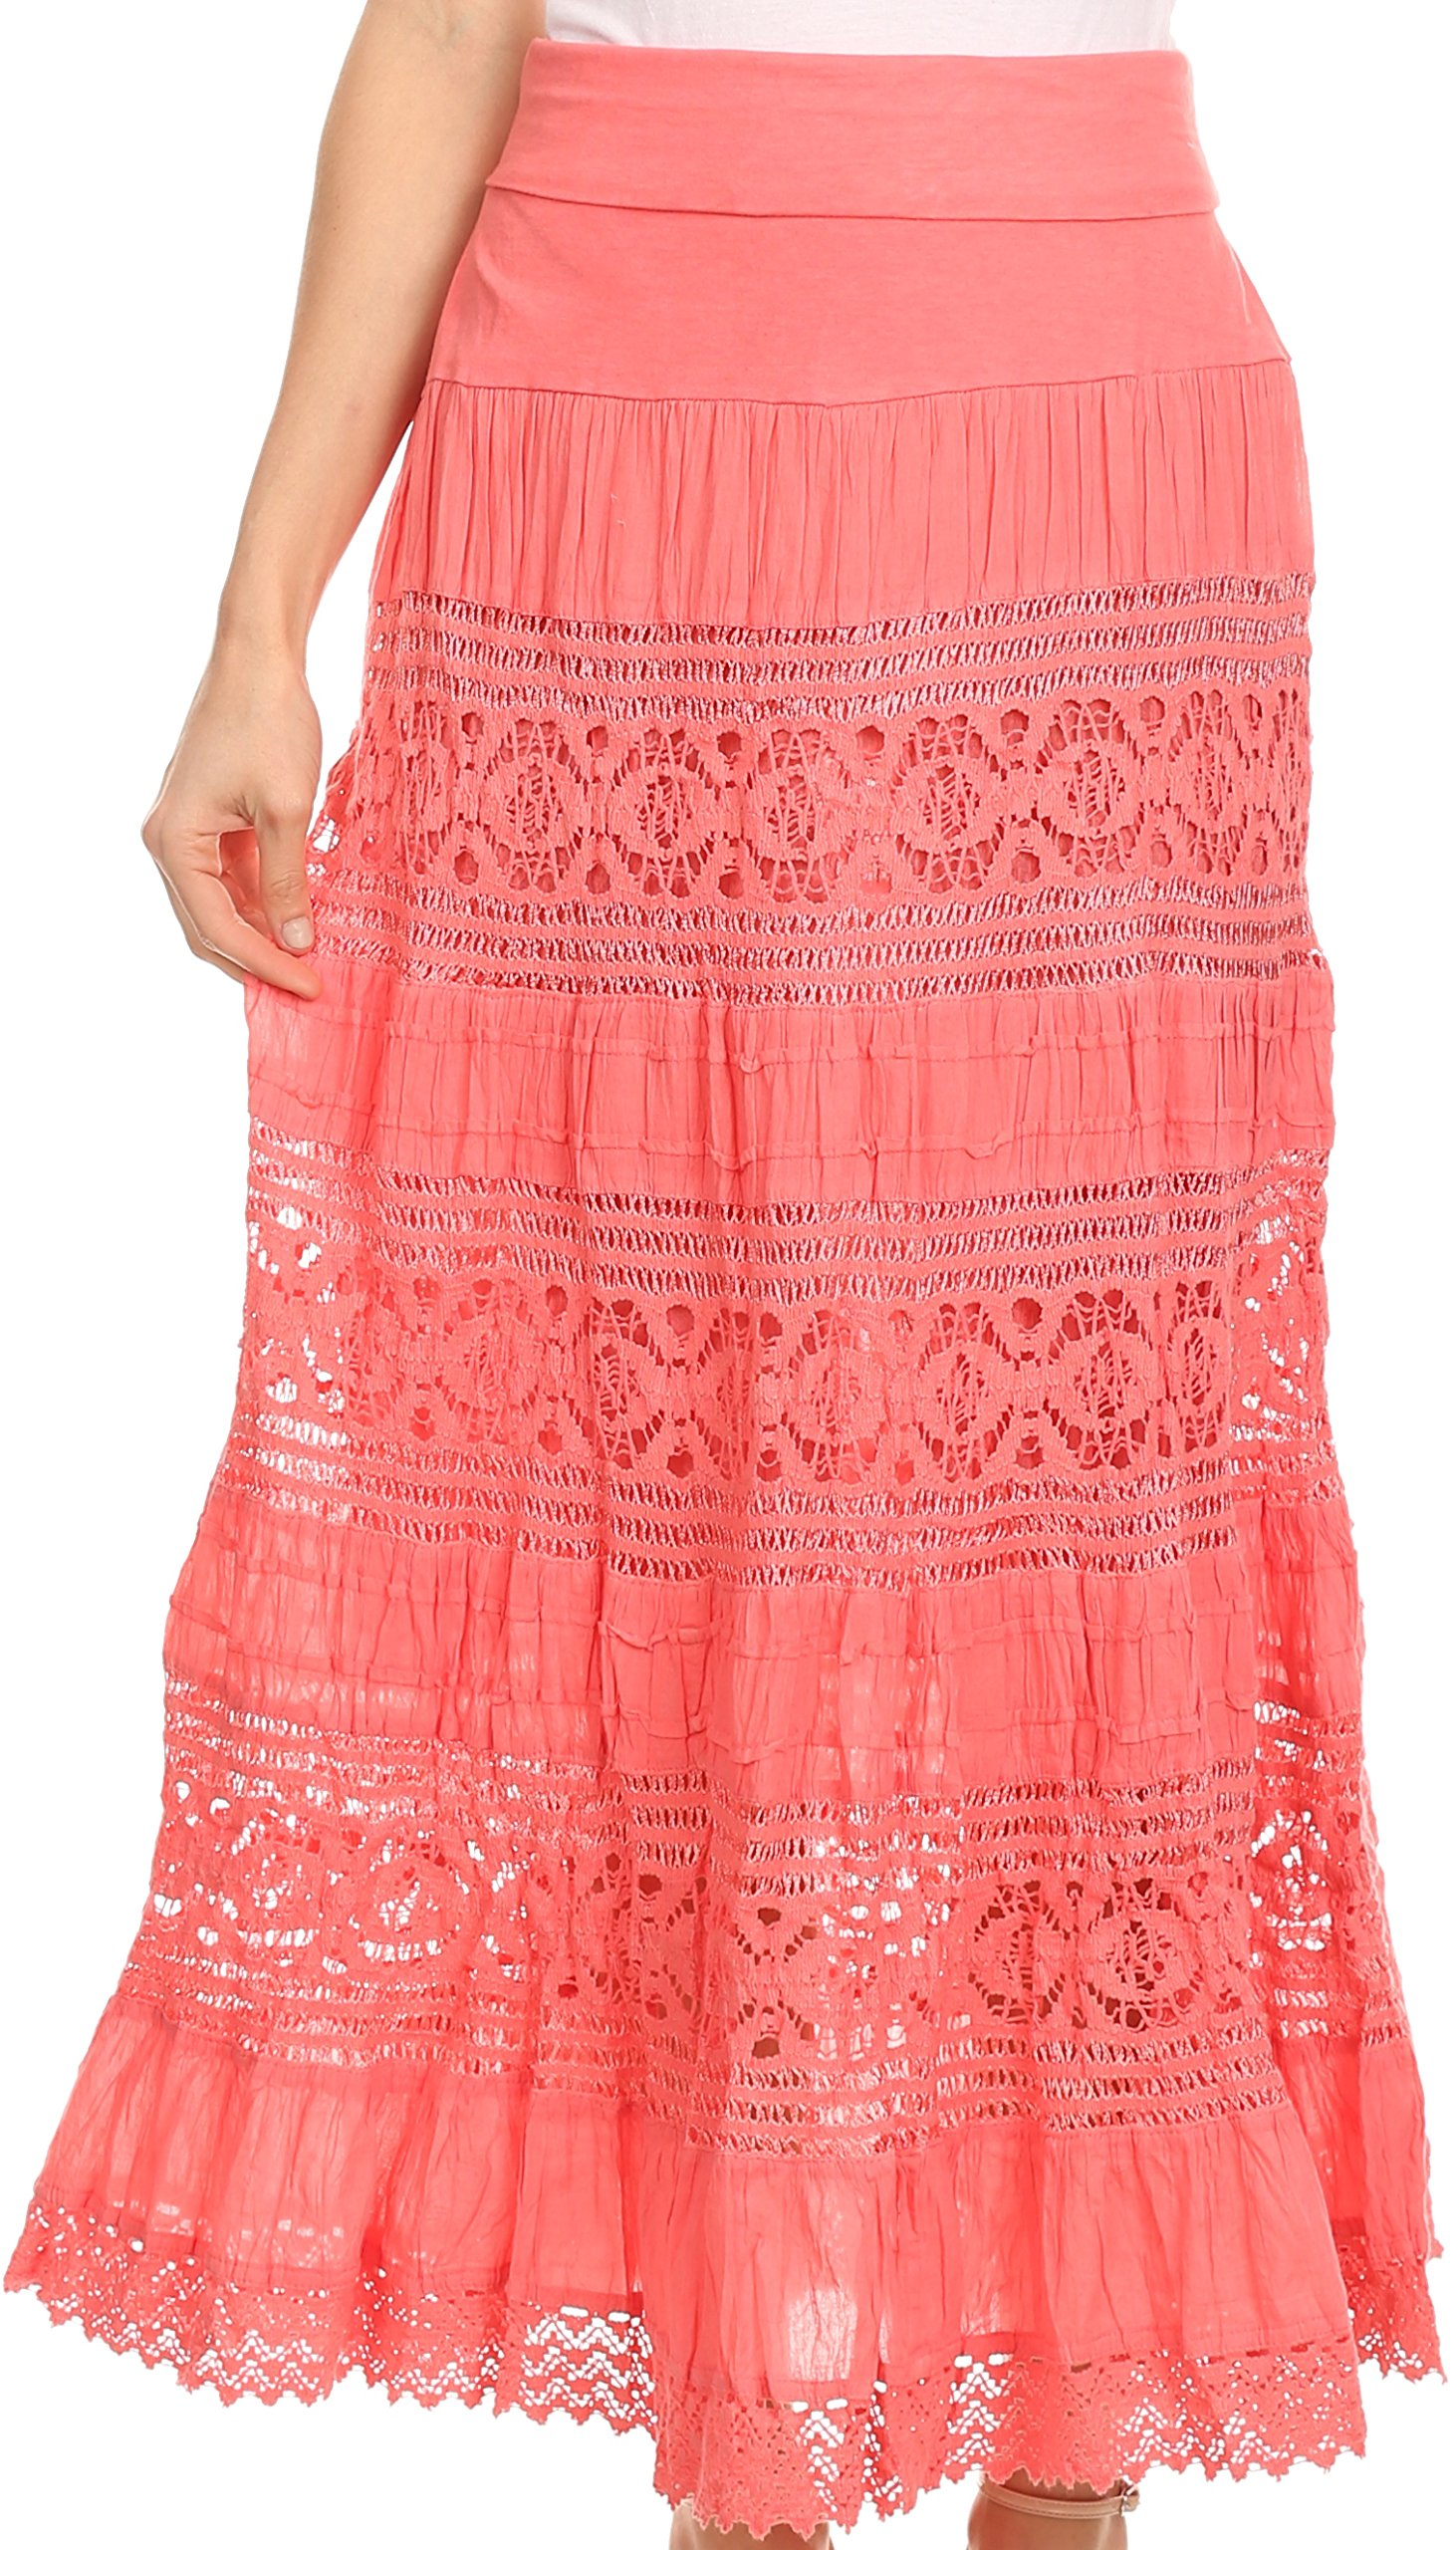 Sakkas 1238 - Gracie Crochet Lace Tiered Long Cotton Skirt with Fold-Over Waistband - Melon - L